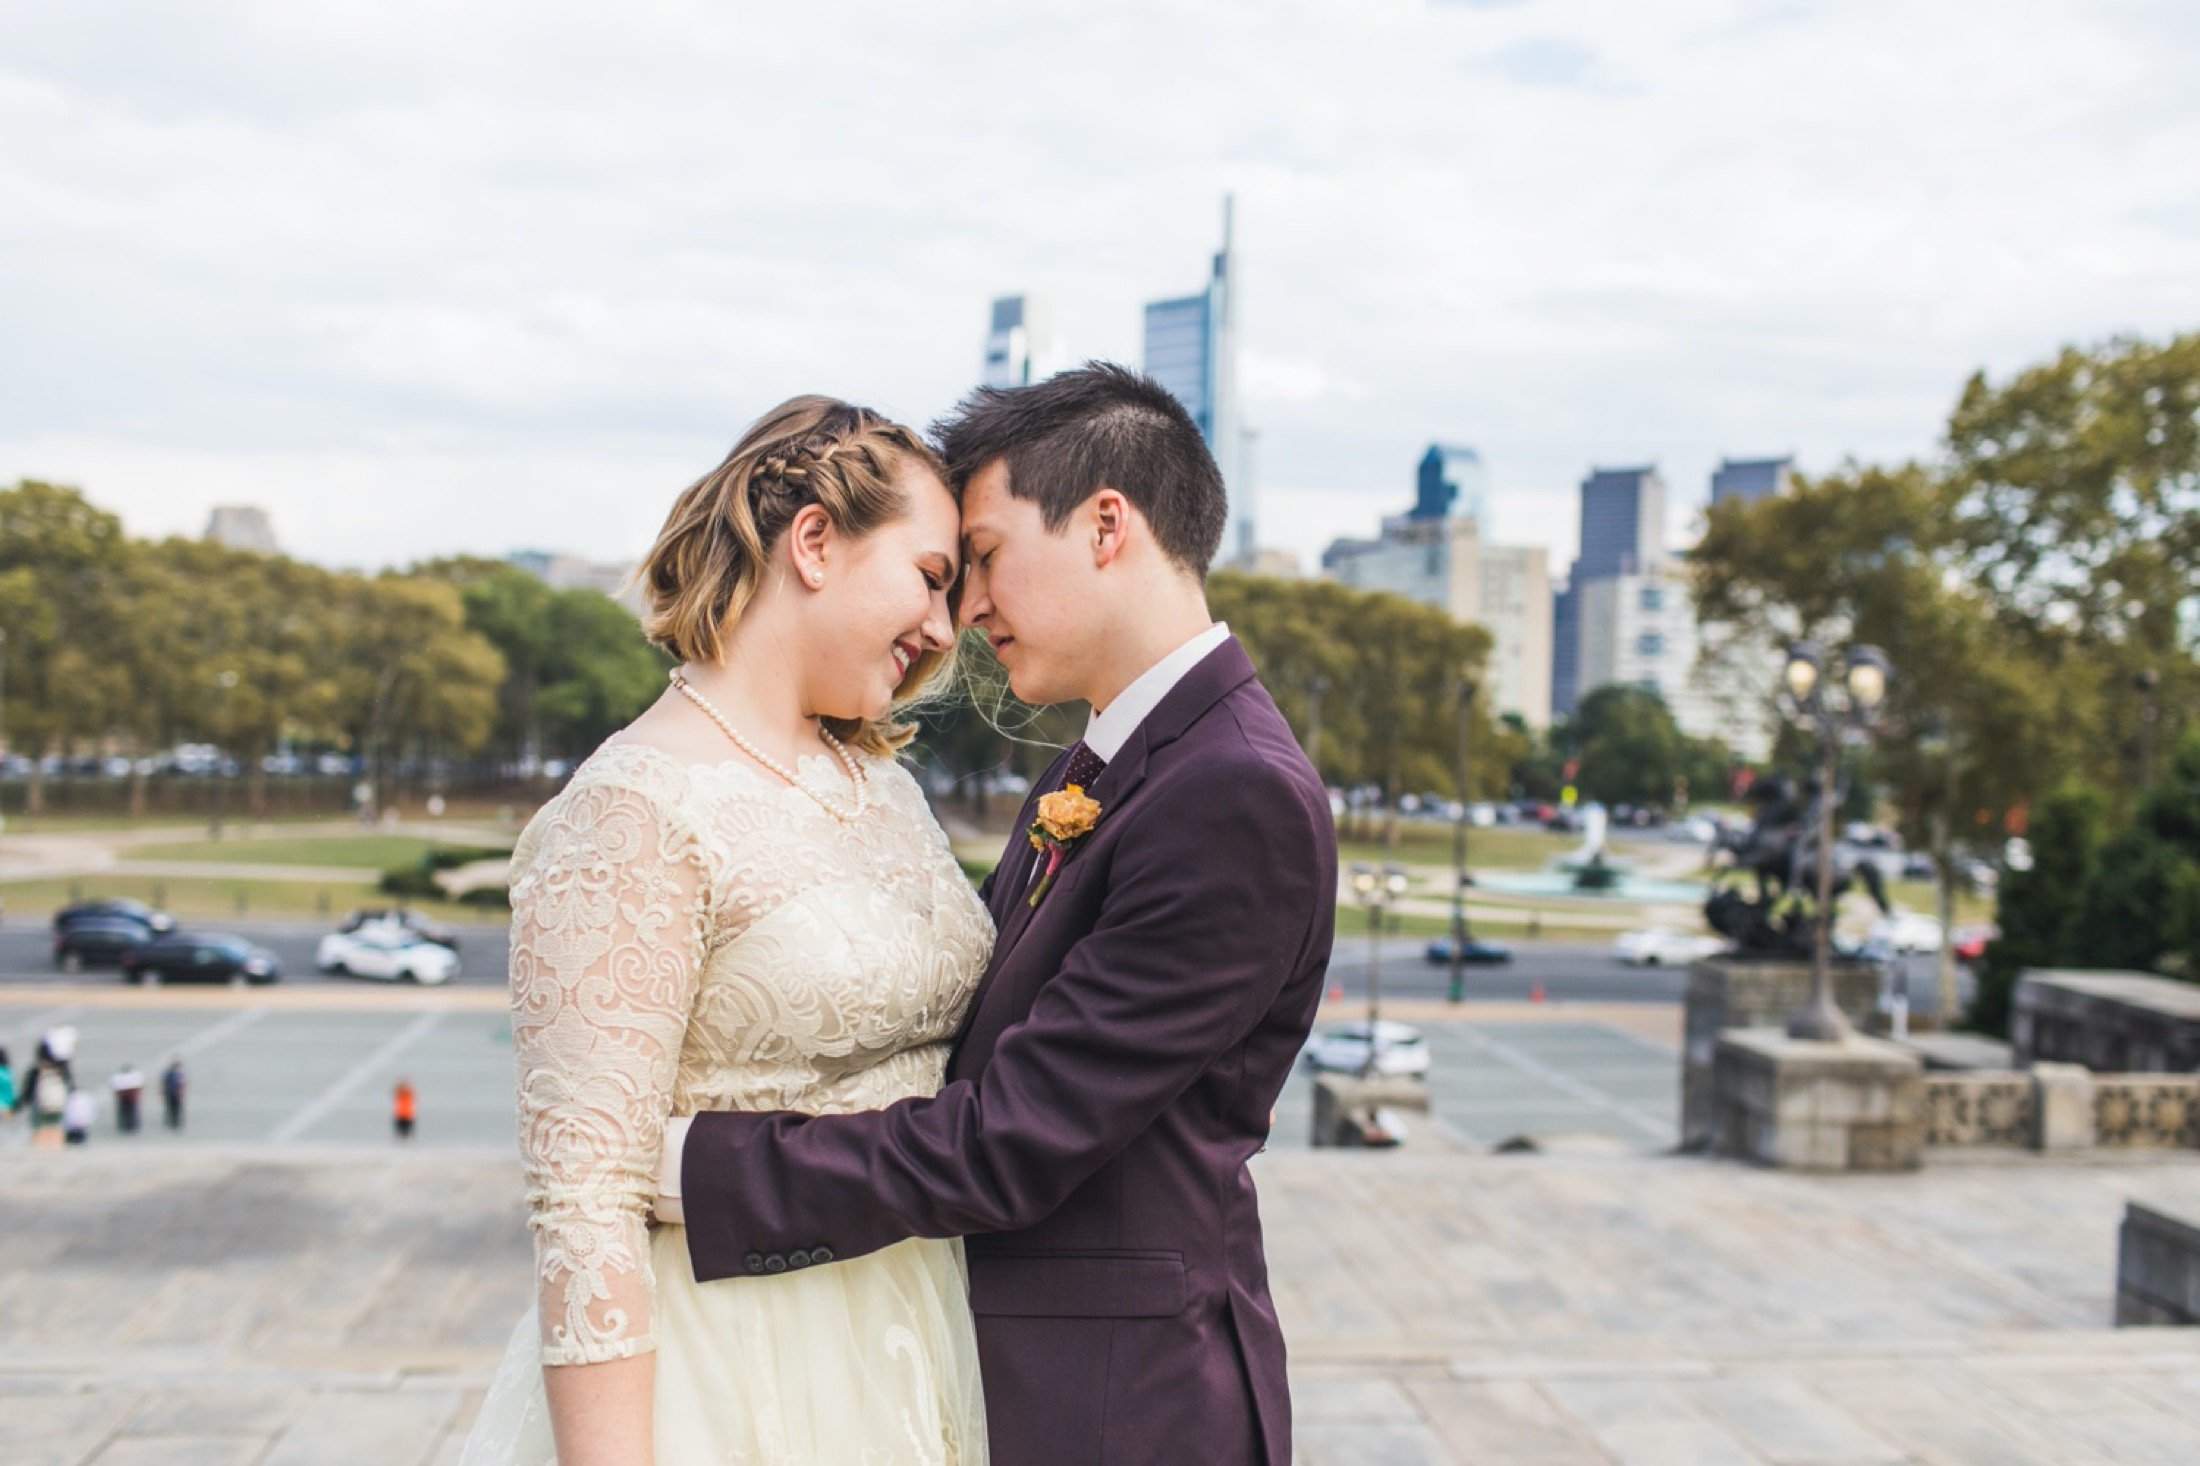 Philadelphia Museum of Art, elopement, Philadelphia, microwedding, skyline